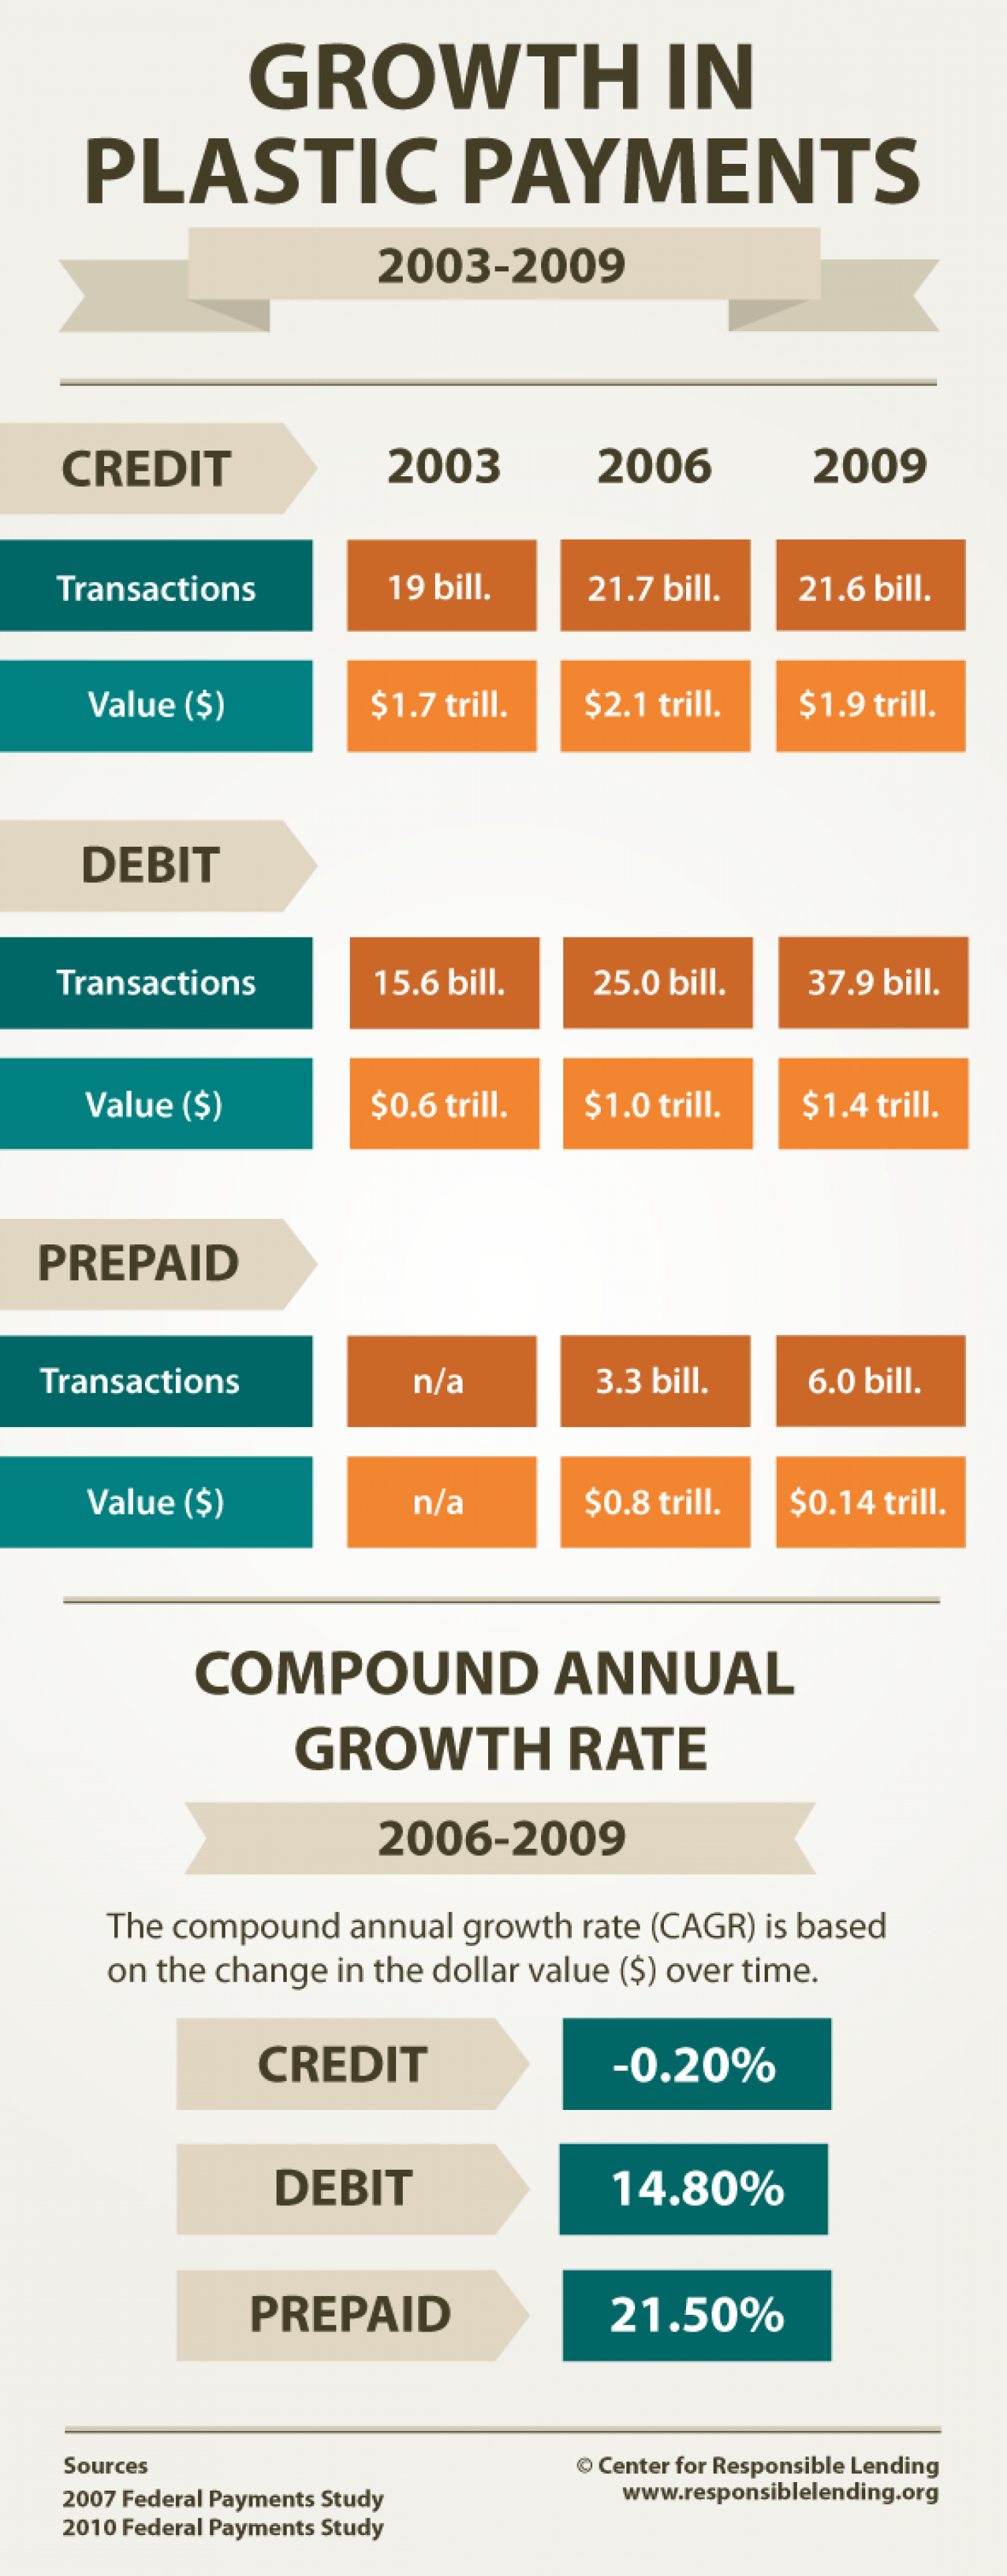 Growth in Plastic Payments Infographic